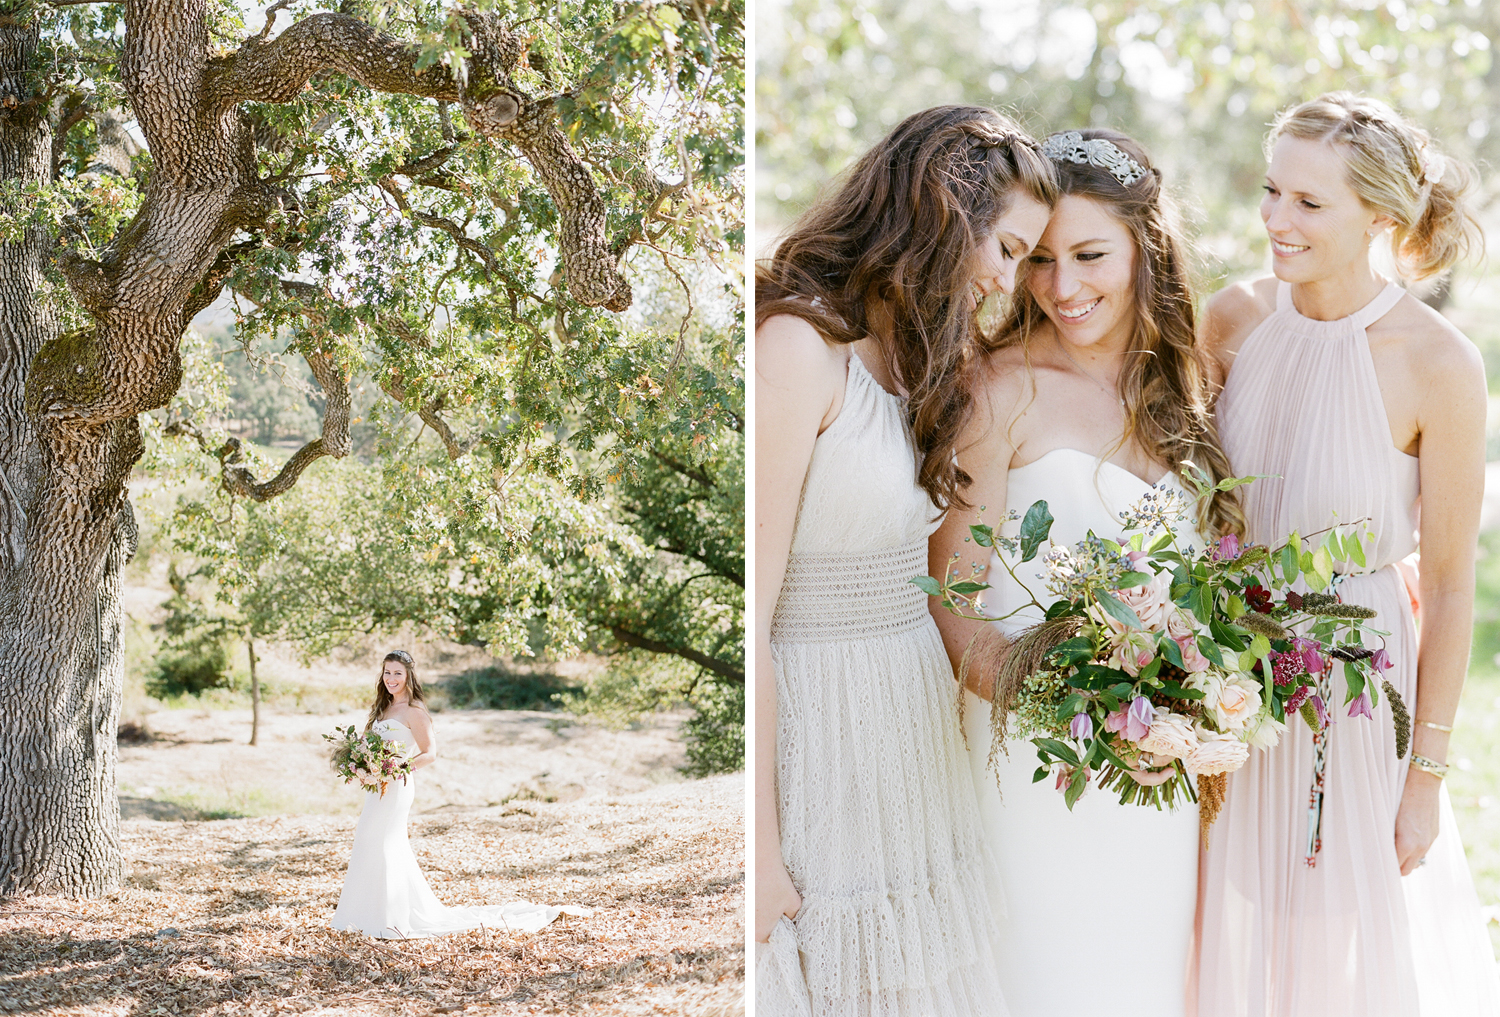 The bride shares a moment with her sister and bridesmaids; Sylvie Gil Photography